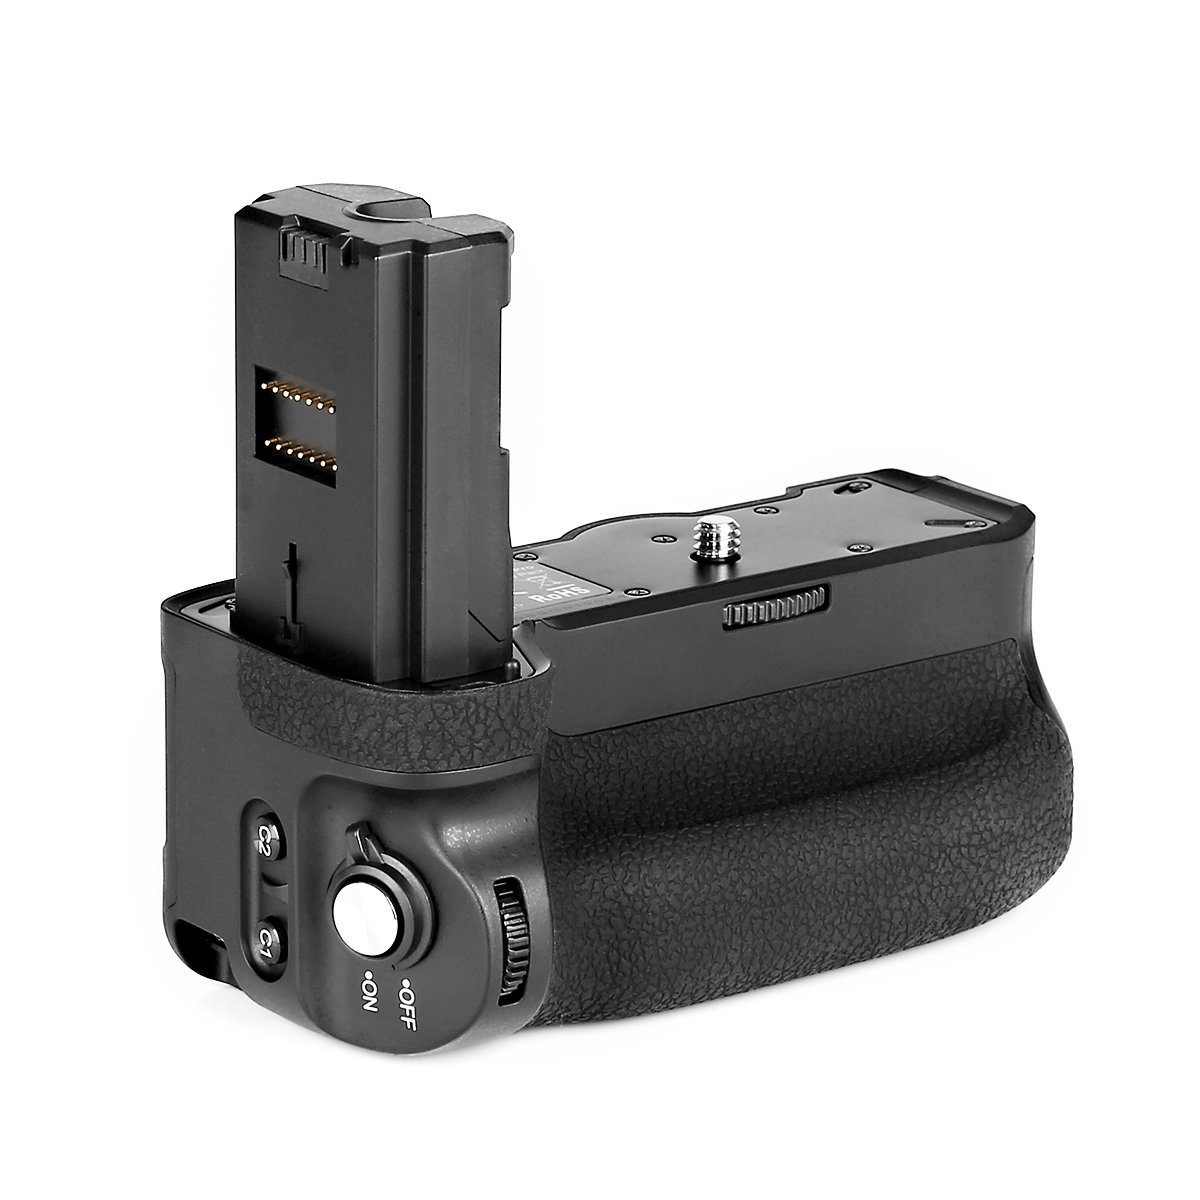 Meike MK-A9 Battery Handy Grip Control Shooting Vertical-hooting Fsunction For Sony A9 A7III A73 A7M3 A7RIII A7R3 Camera